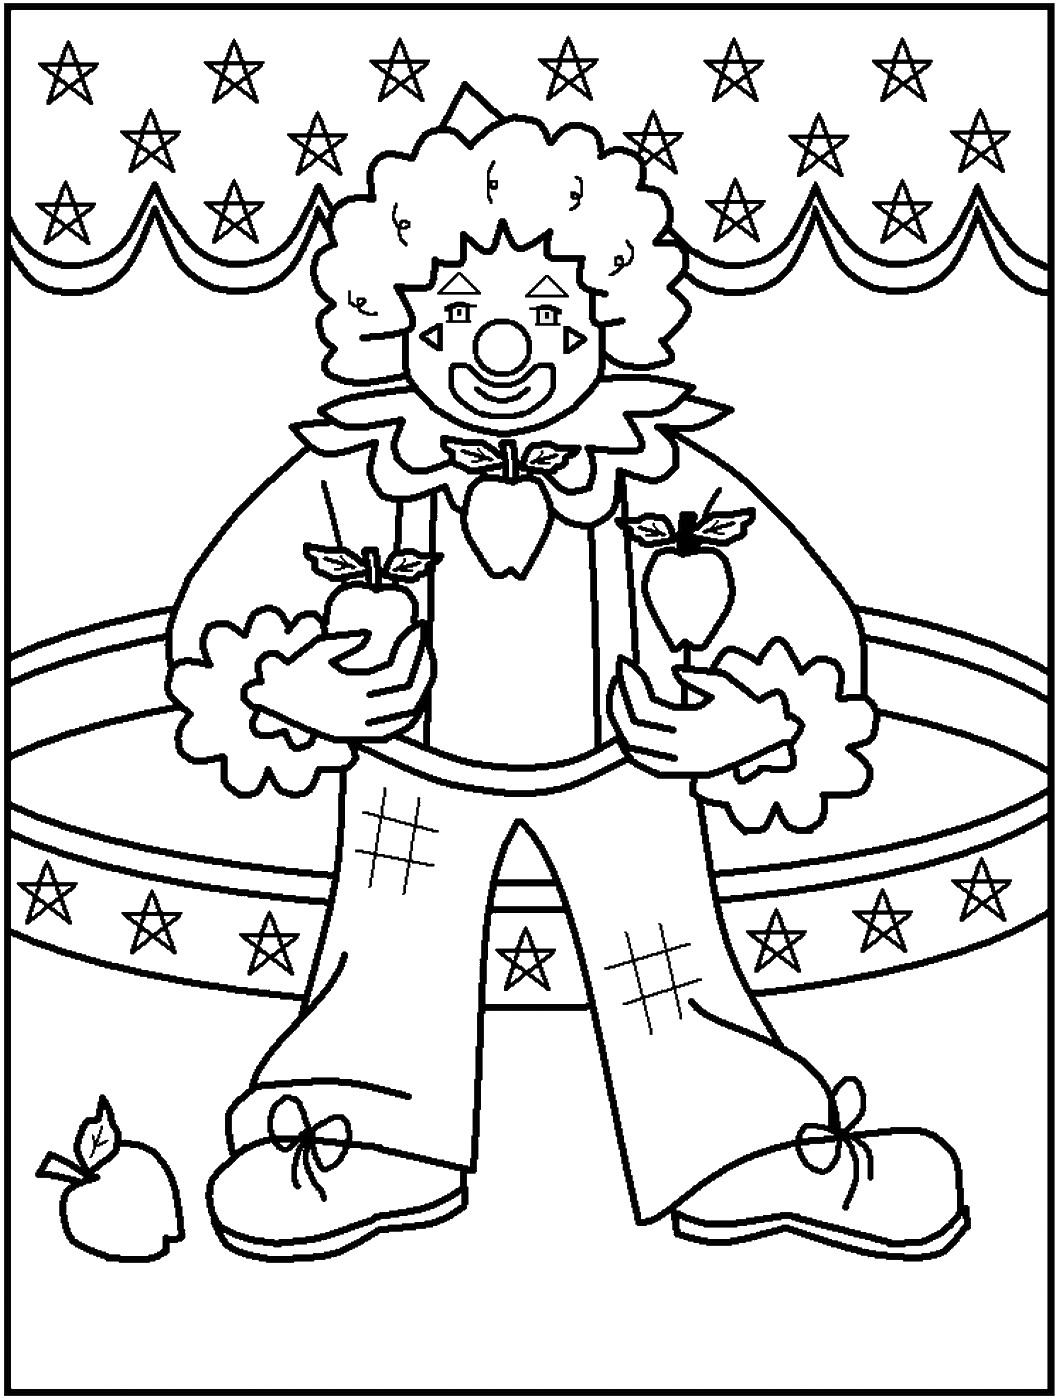 carnival clown coloring pages circus coloring pages carnival coloring pages clown